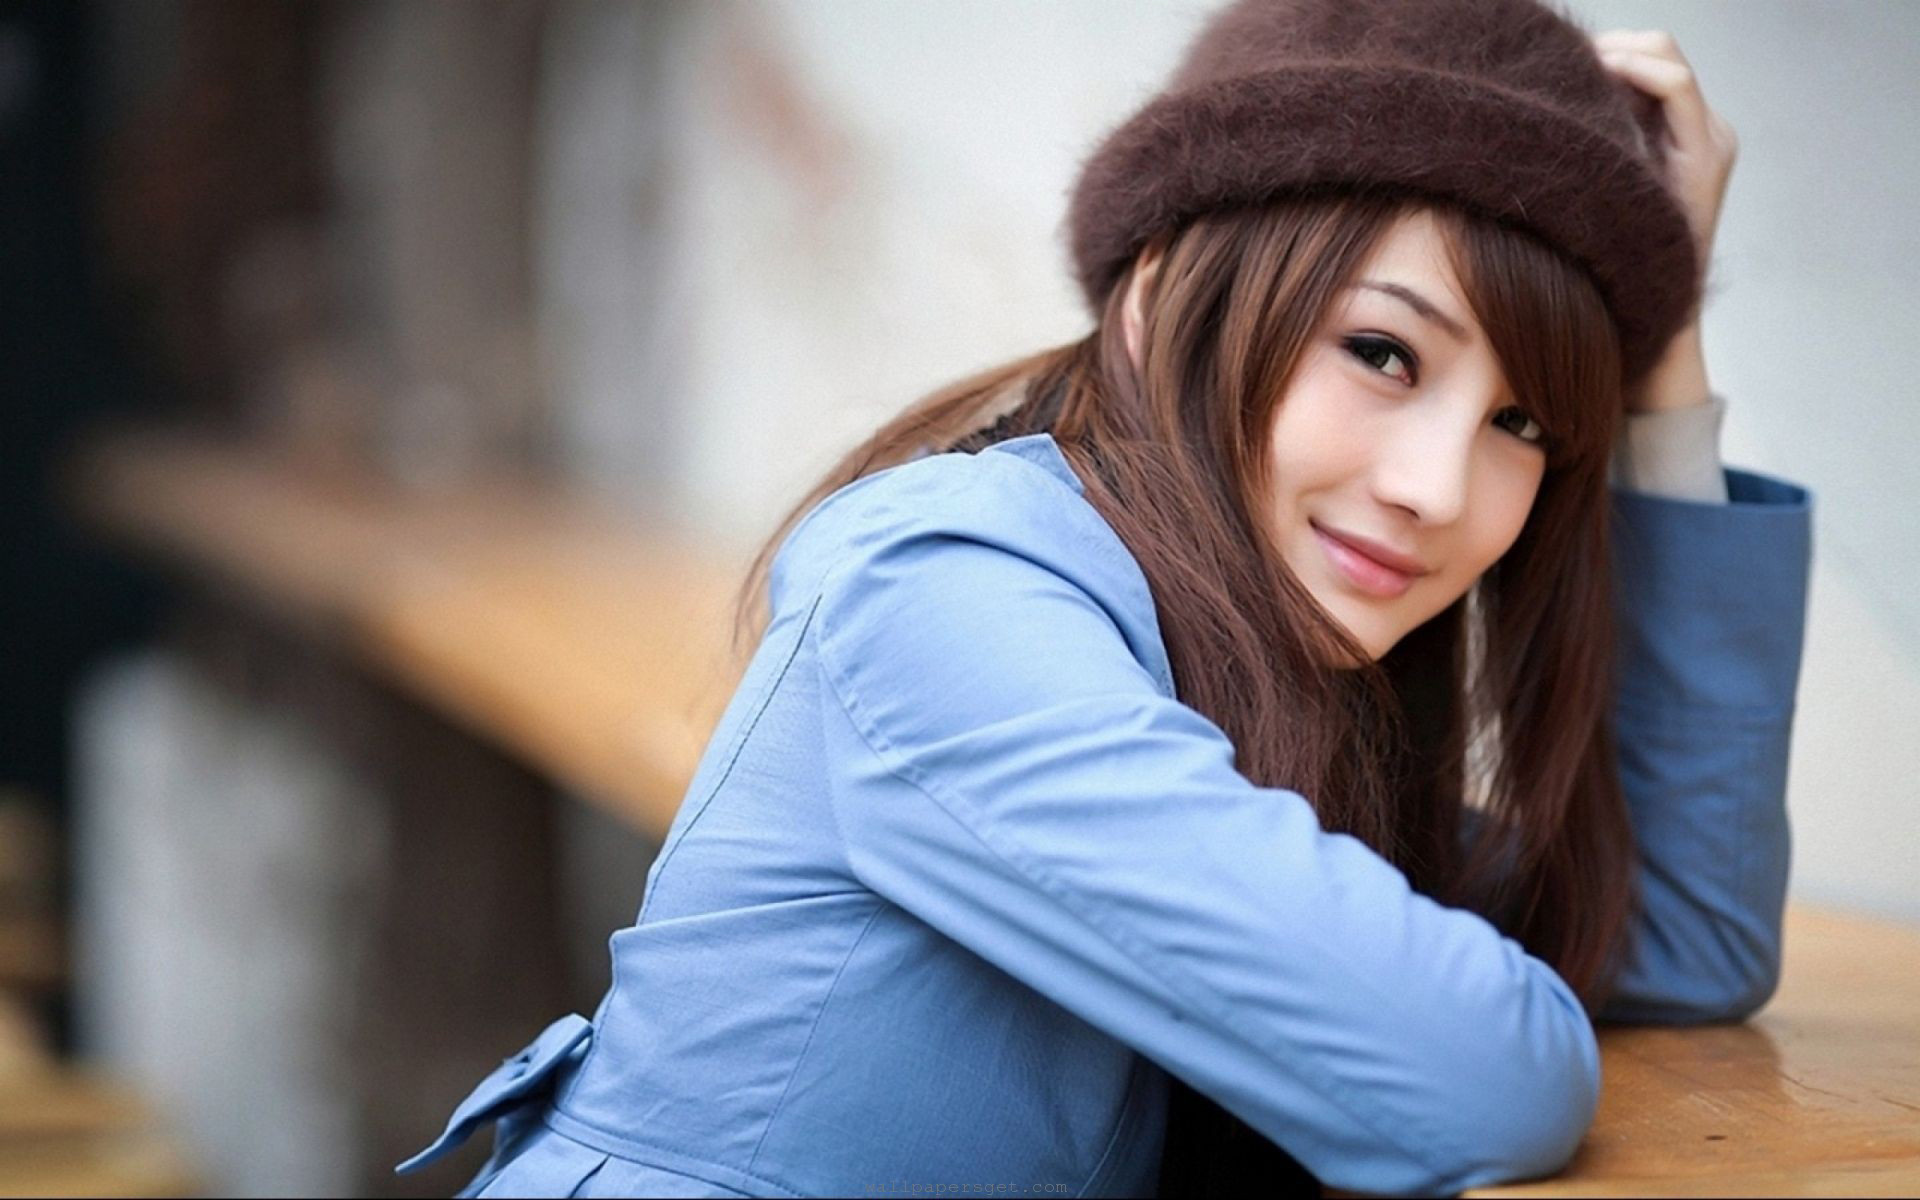 Beautiful Japanese Girls Wallpapers: Find best latest Beautiful Japanese Girls  Wallpapers in HD for your